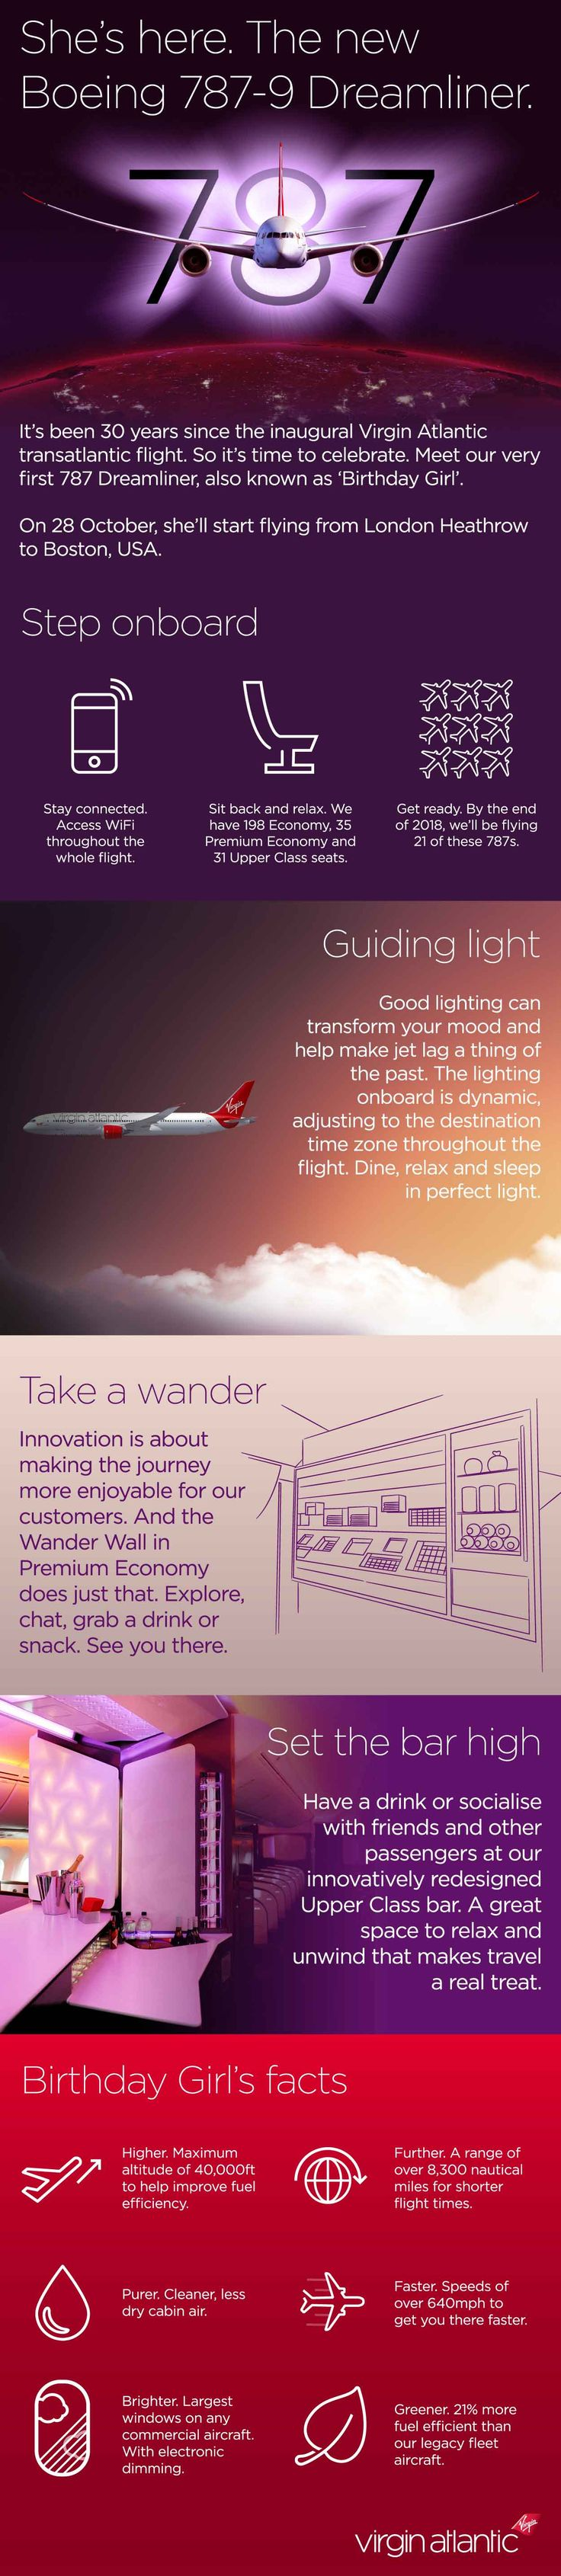 Virgin Atlantic's 787-9 Dreamliner, nicknamed The Birthday Girl #infographic #787 #dreamliner